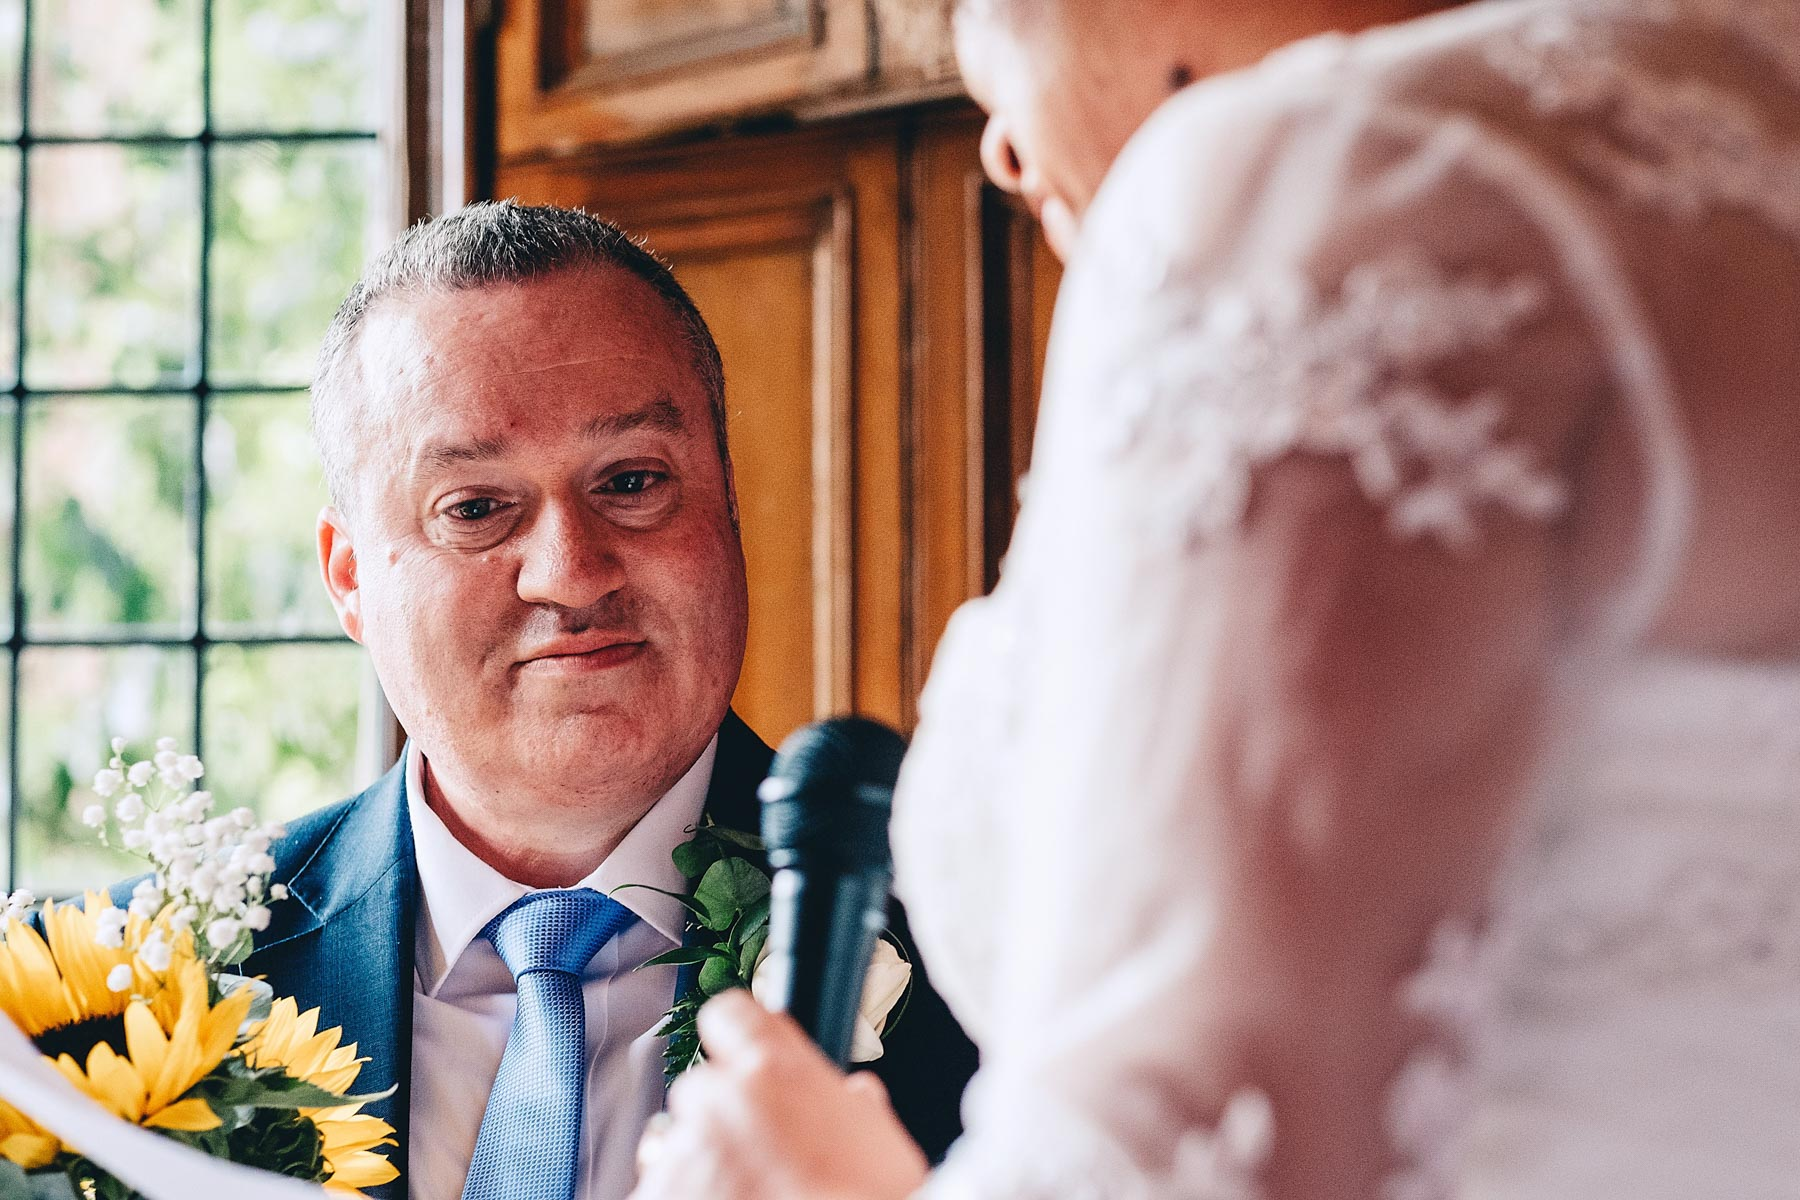 Groom looks lovingly at bride during wedding service